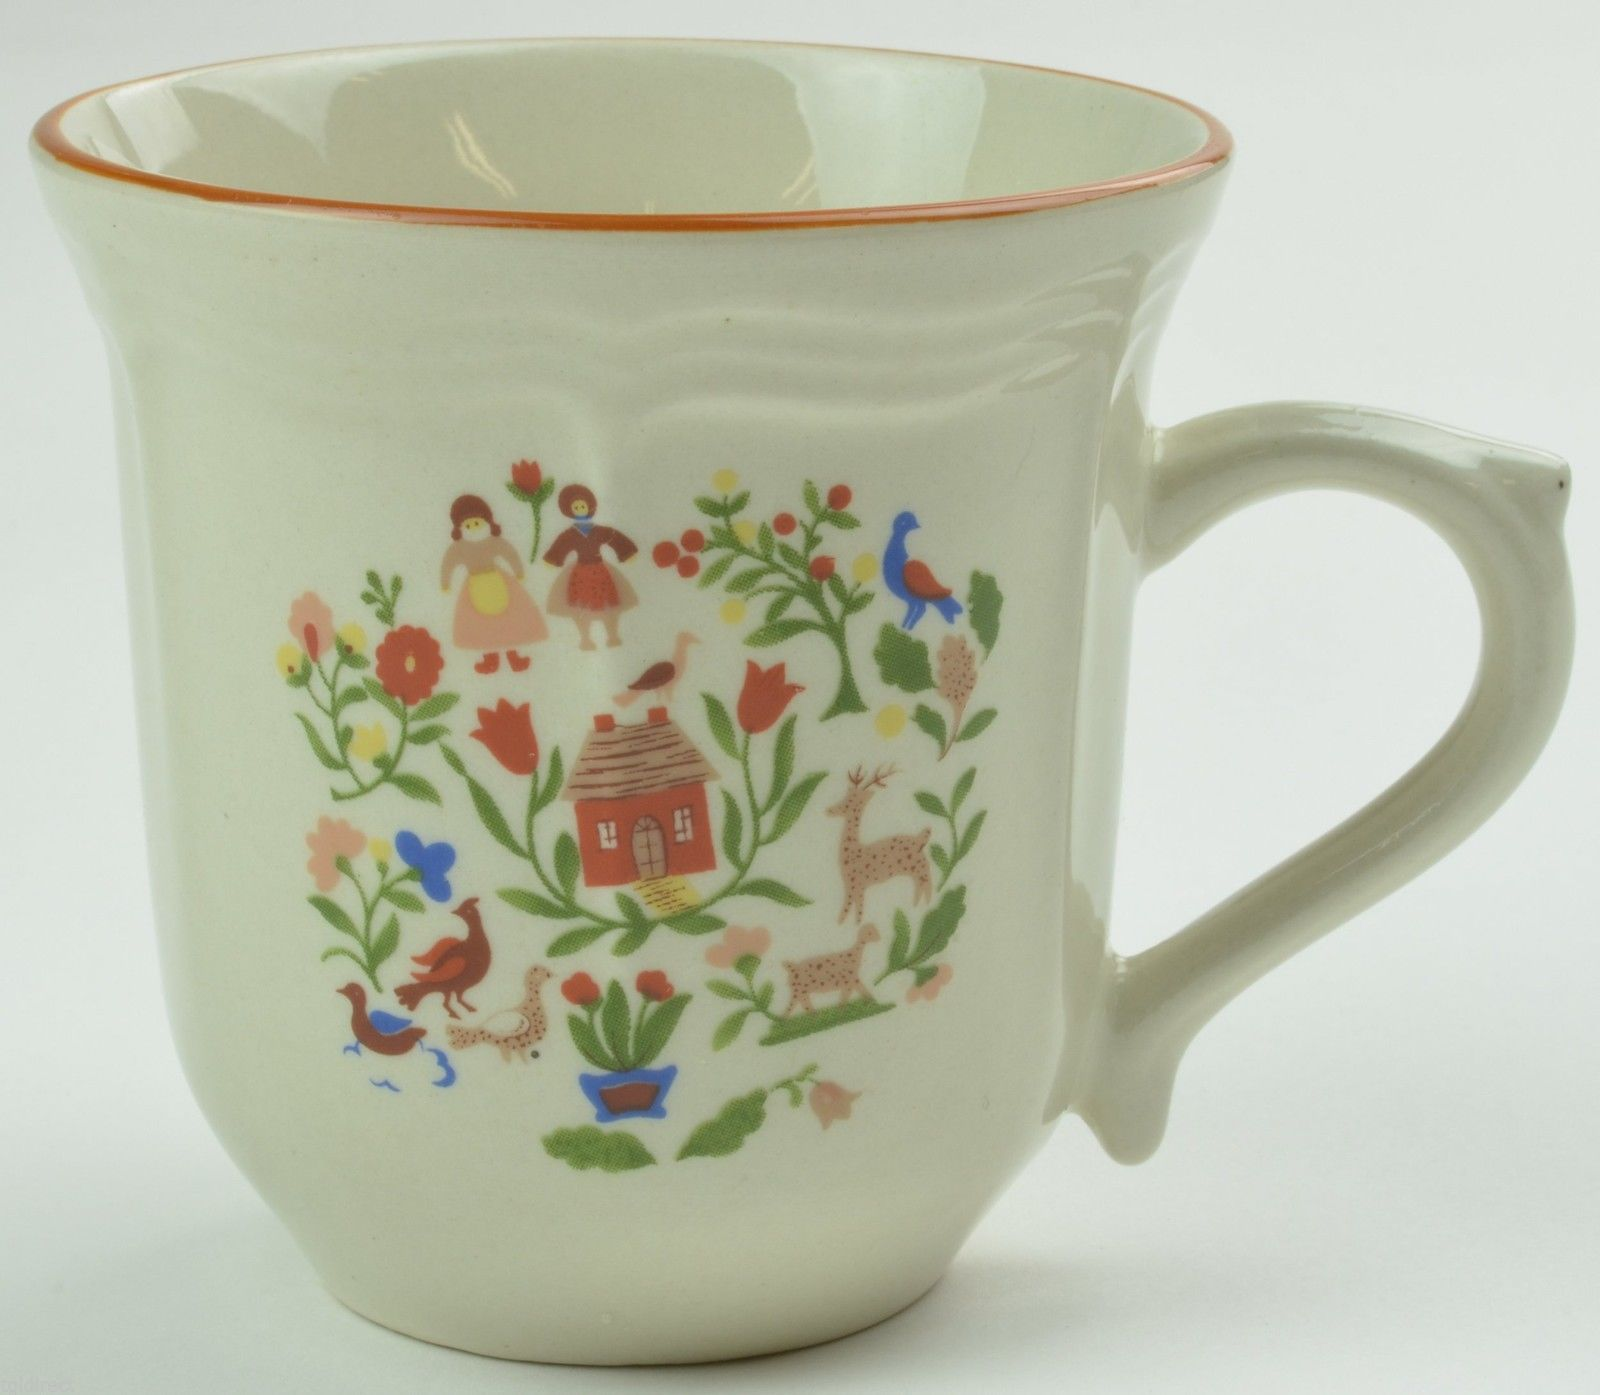 Gibson Designs Adamand Eve Flat Cup Teacup Tea Floral Flowers Stoneware China - $5.99